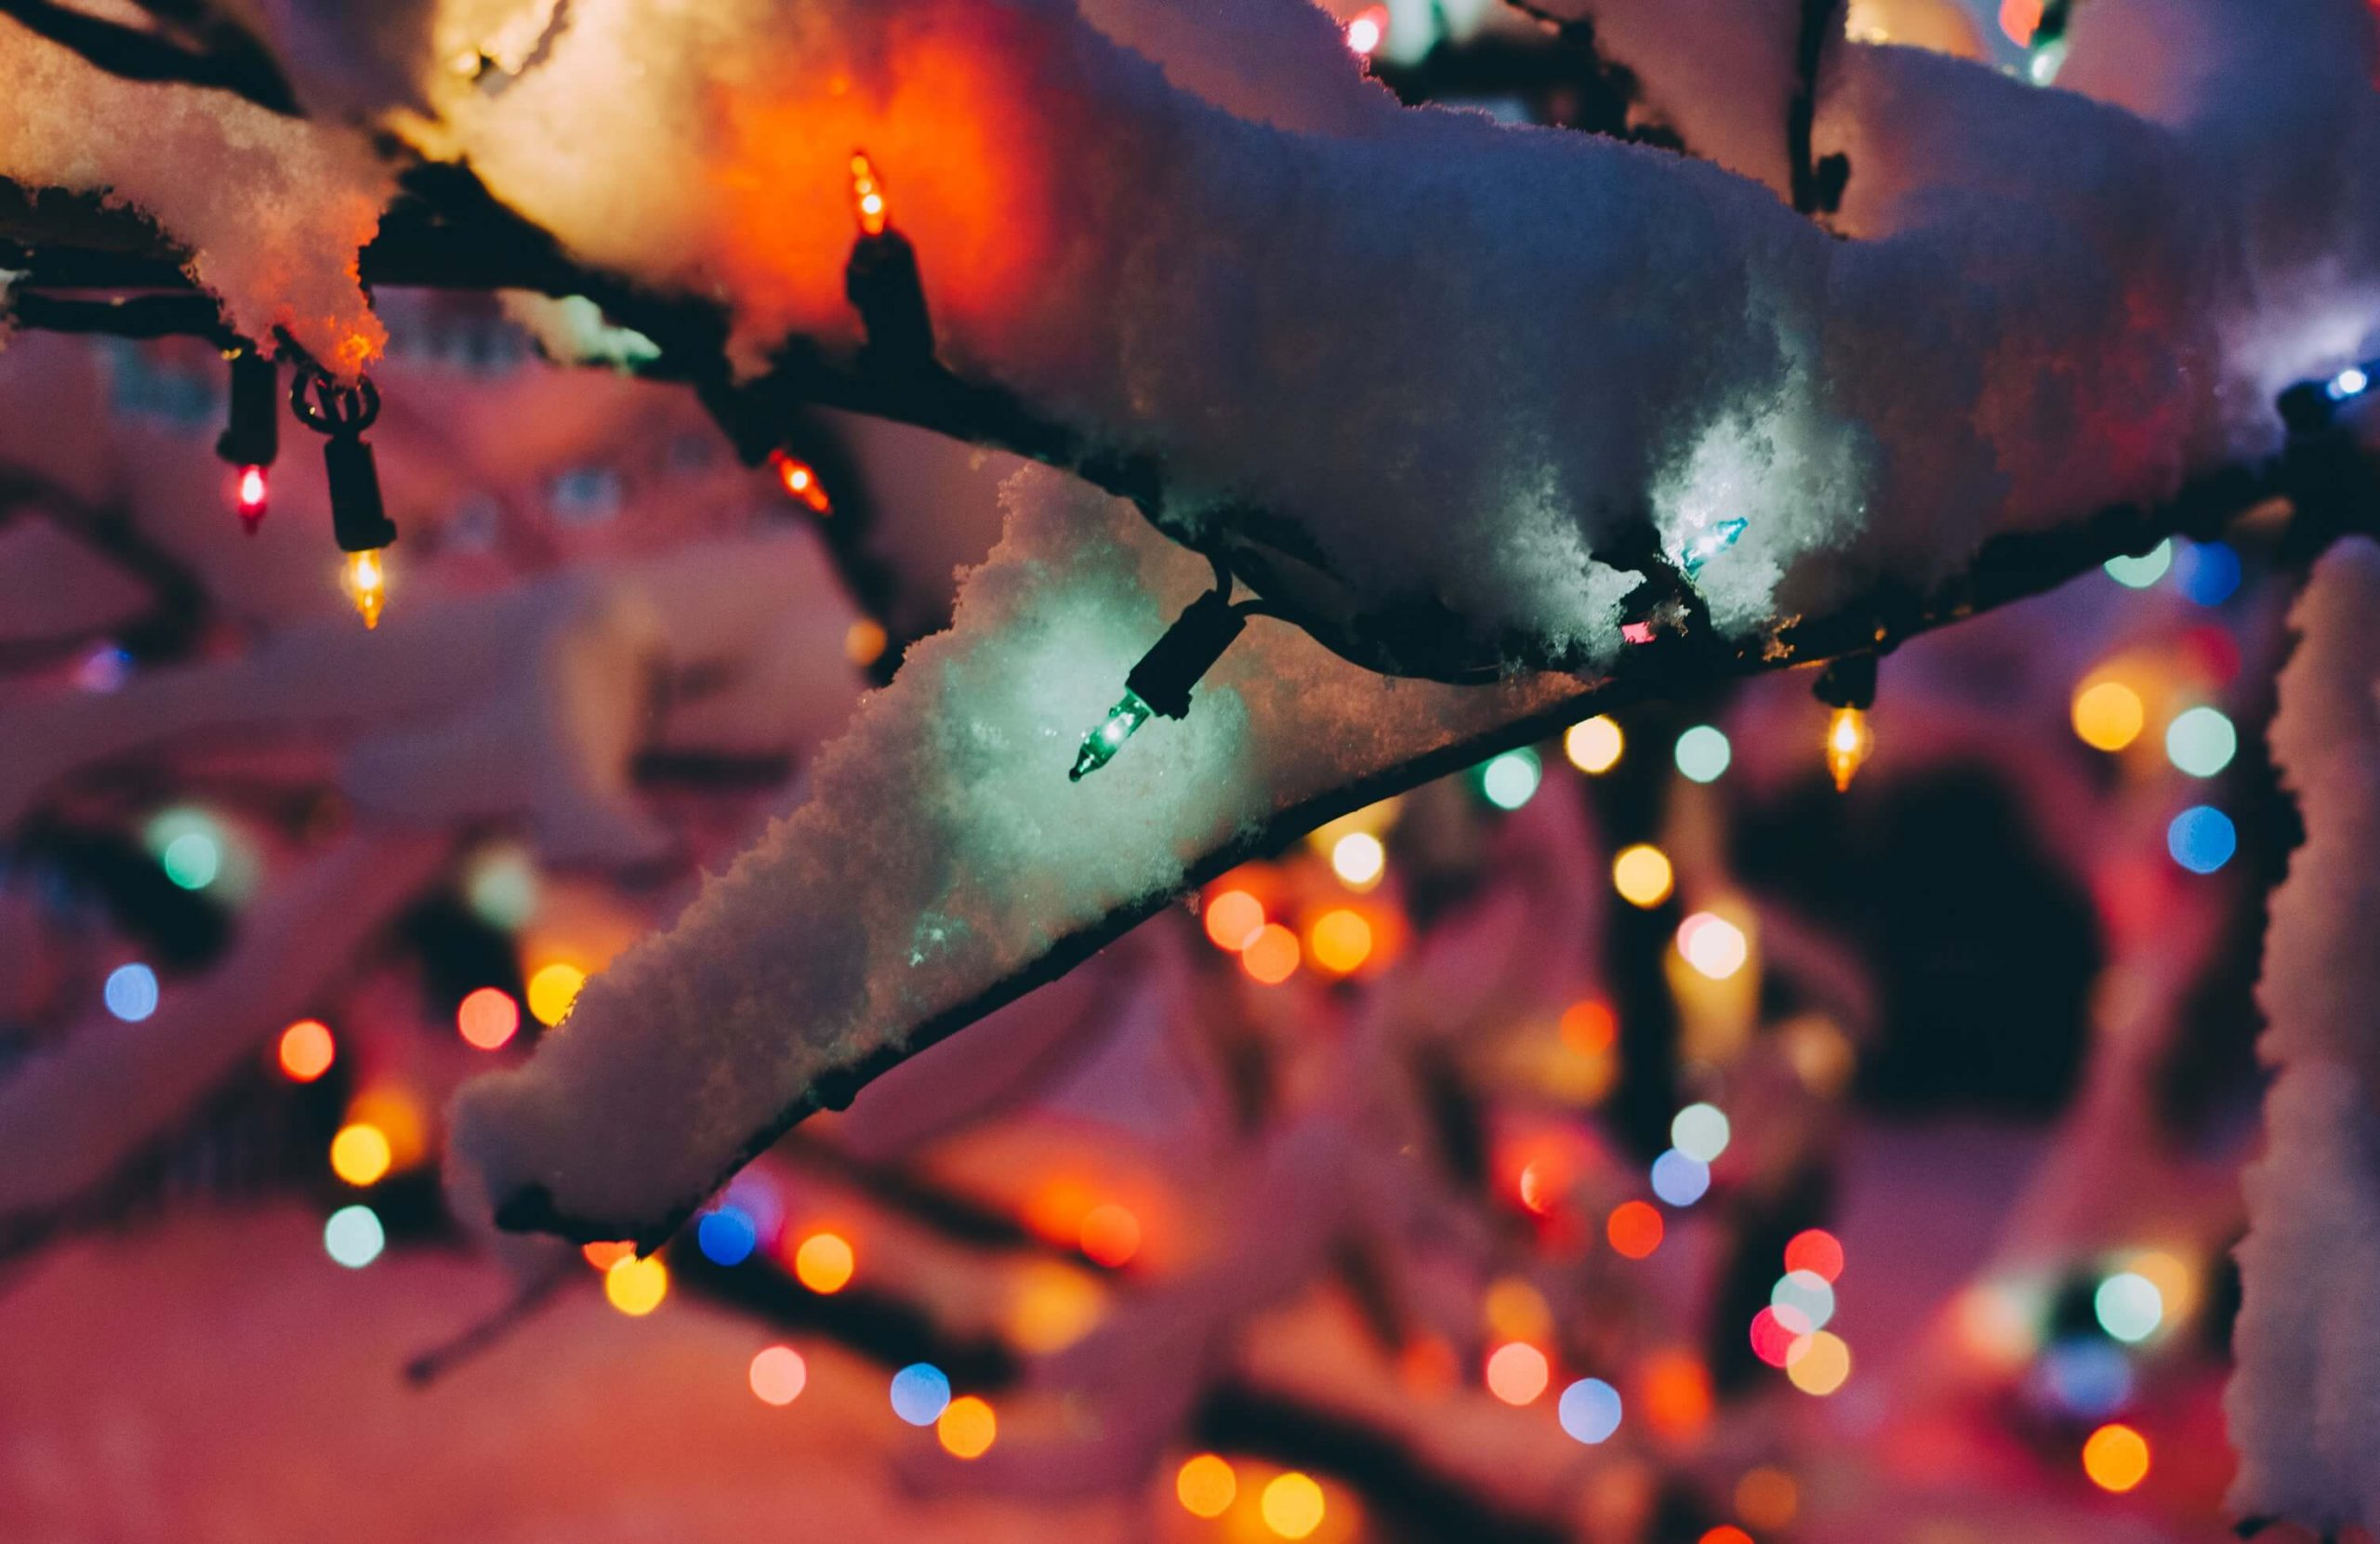 Pretty Christmas lights on some dark branches|www.parentinghighschoolers.com